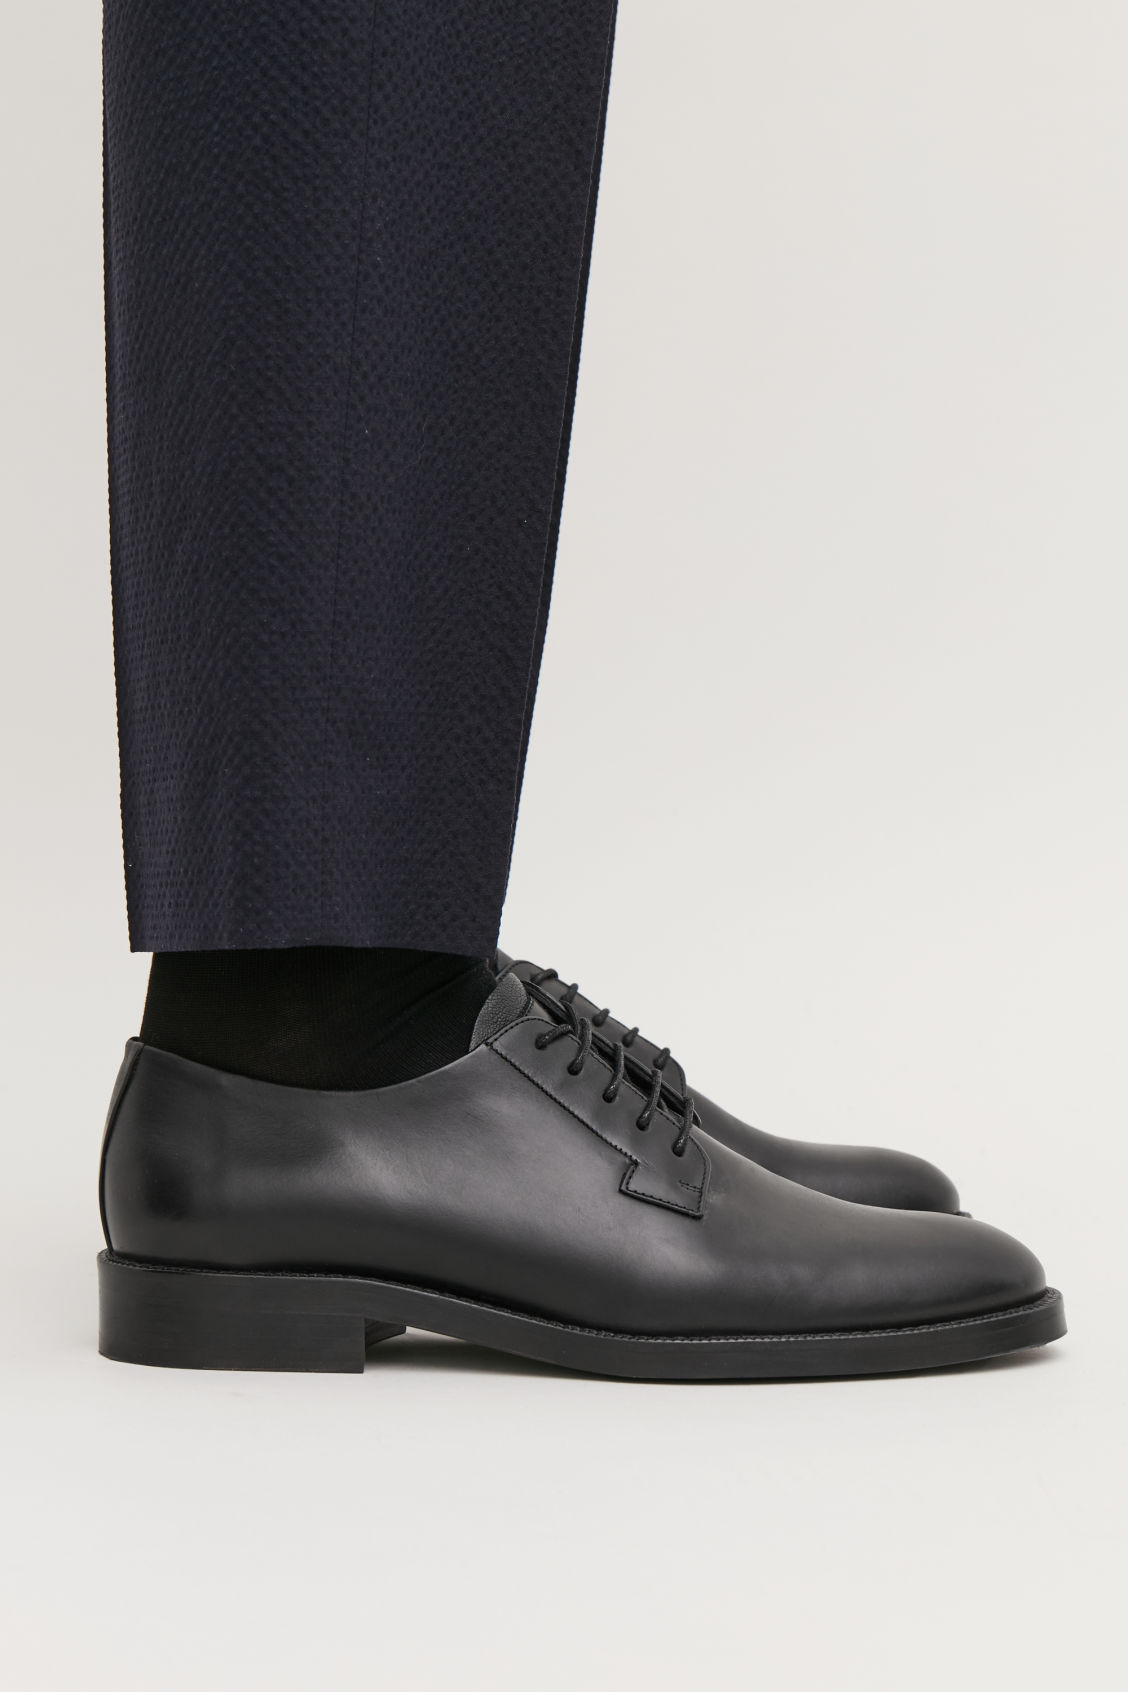 Detailed image of Cos leather lace-up derby shoes in black